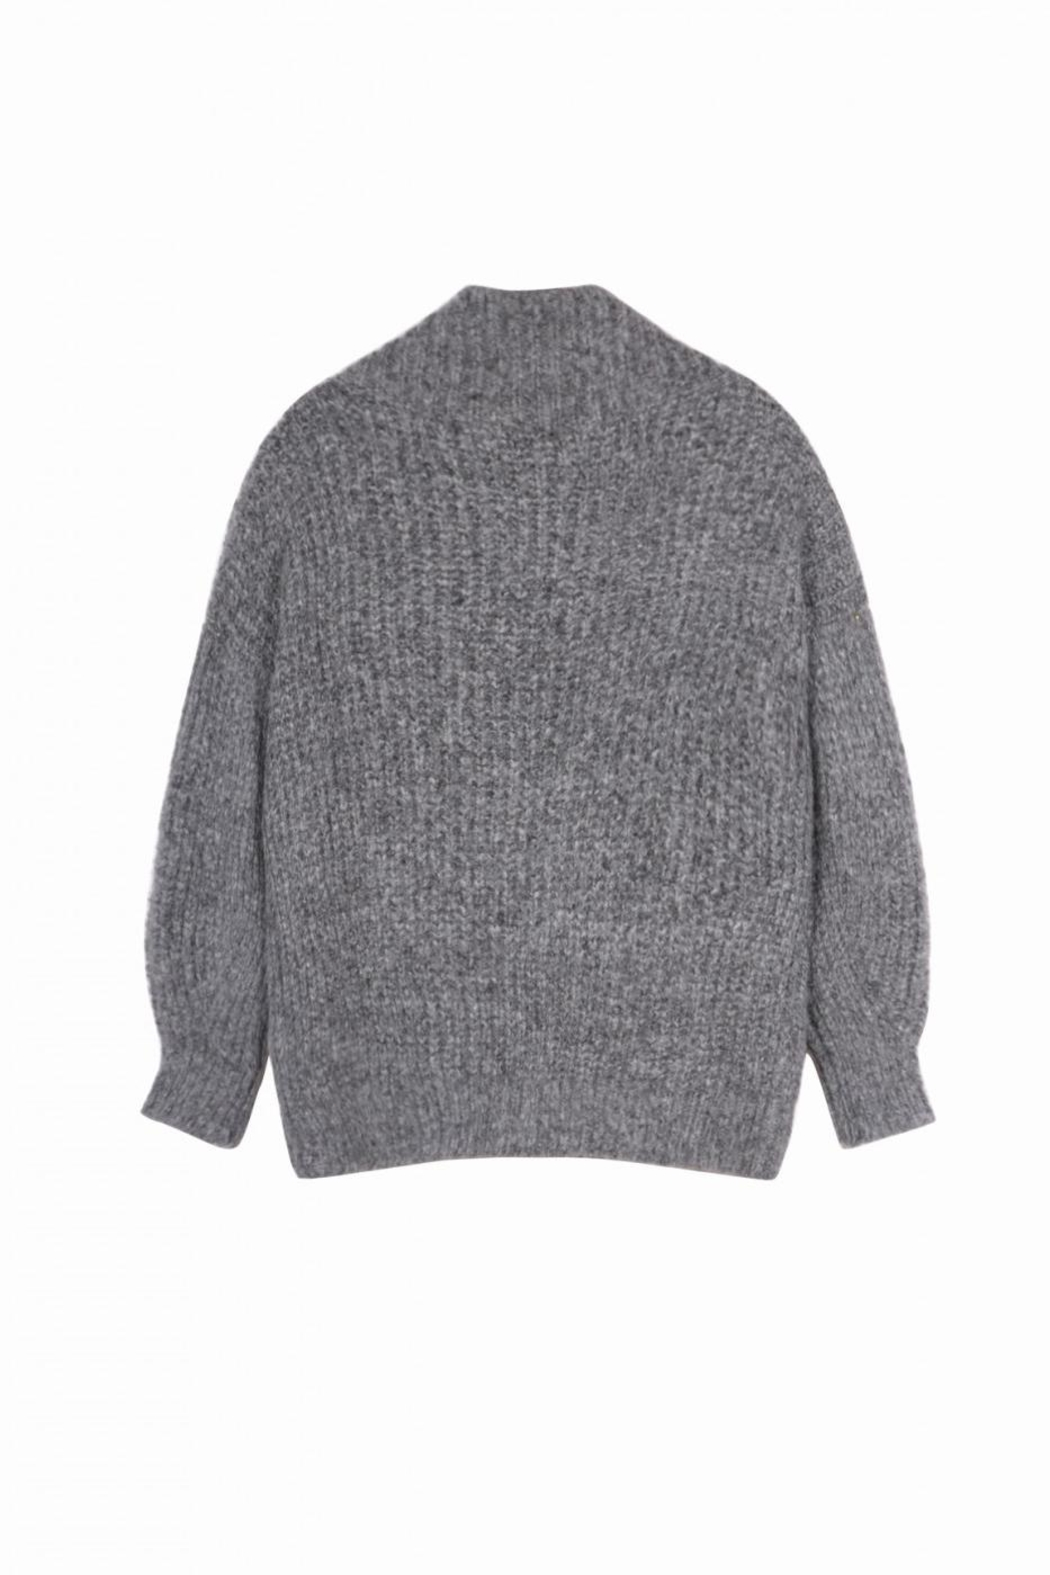 FRNCH Nola Knit Sweater - Front Full Image